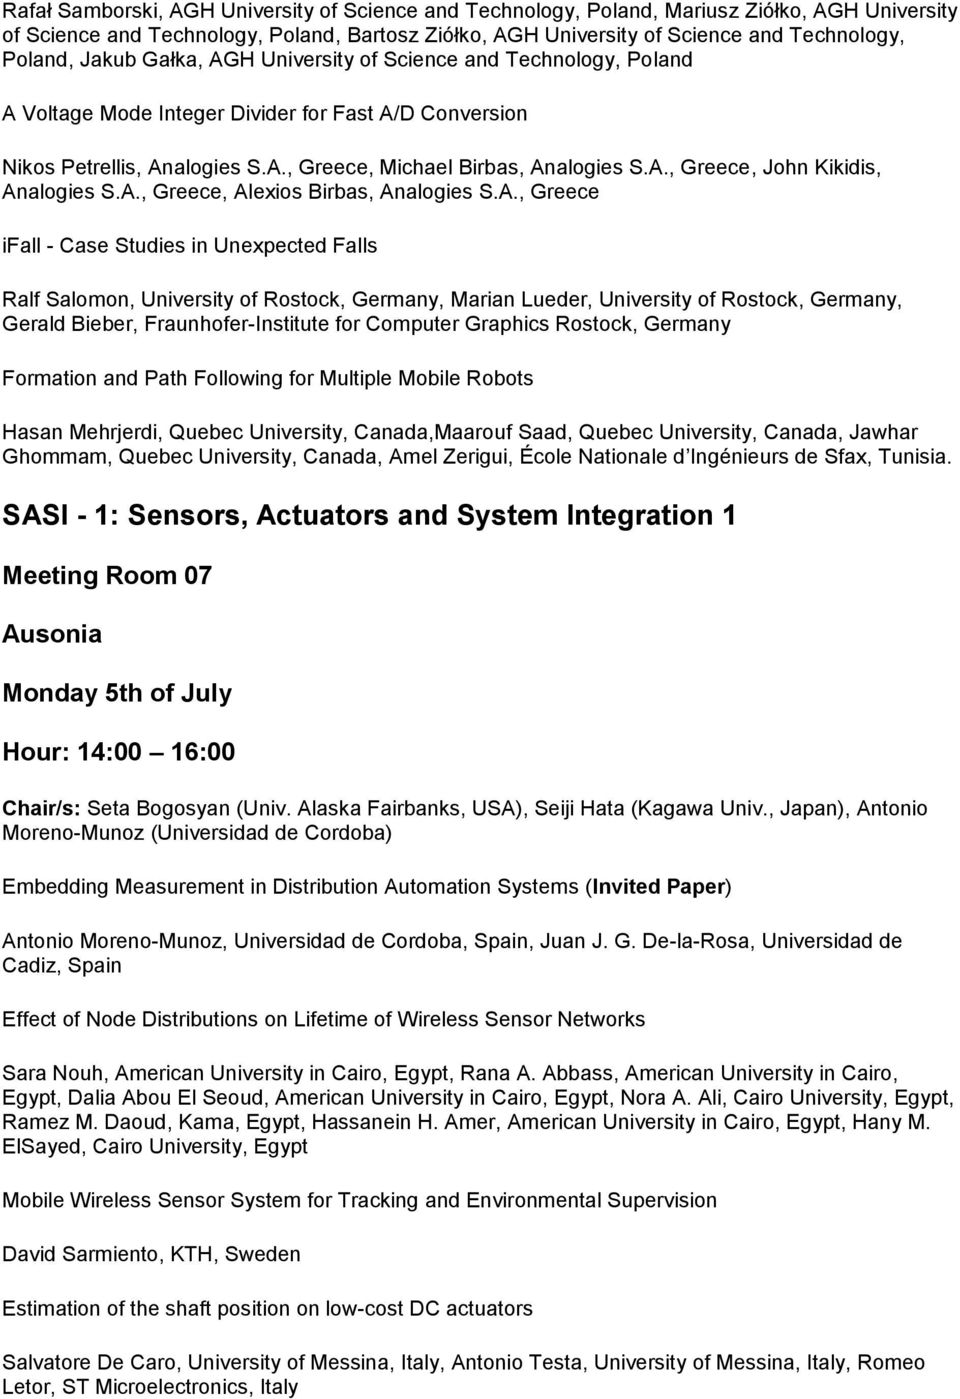 A., Greece, Alexios Birbas, Analogies S.A., Greece ifall - Case Studies in Unexpected Falls Ralf Salomon, University of Rostock, Germany, Marian Lueder, University of Rostock, Germany, Gerald Bieber,